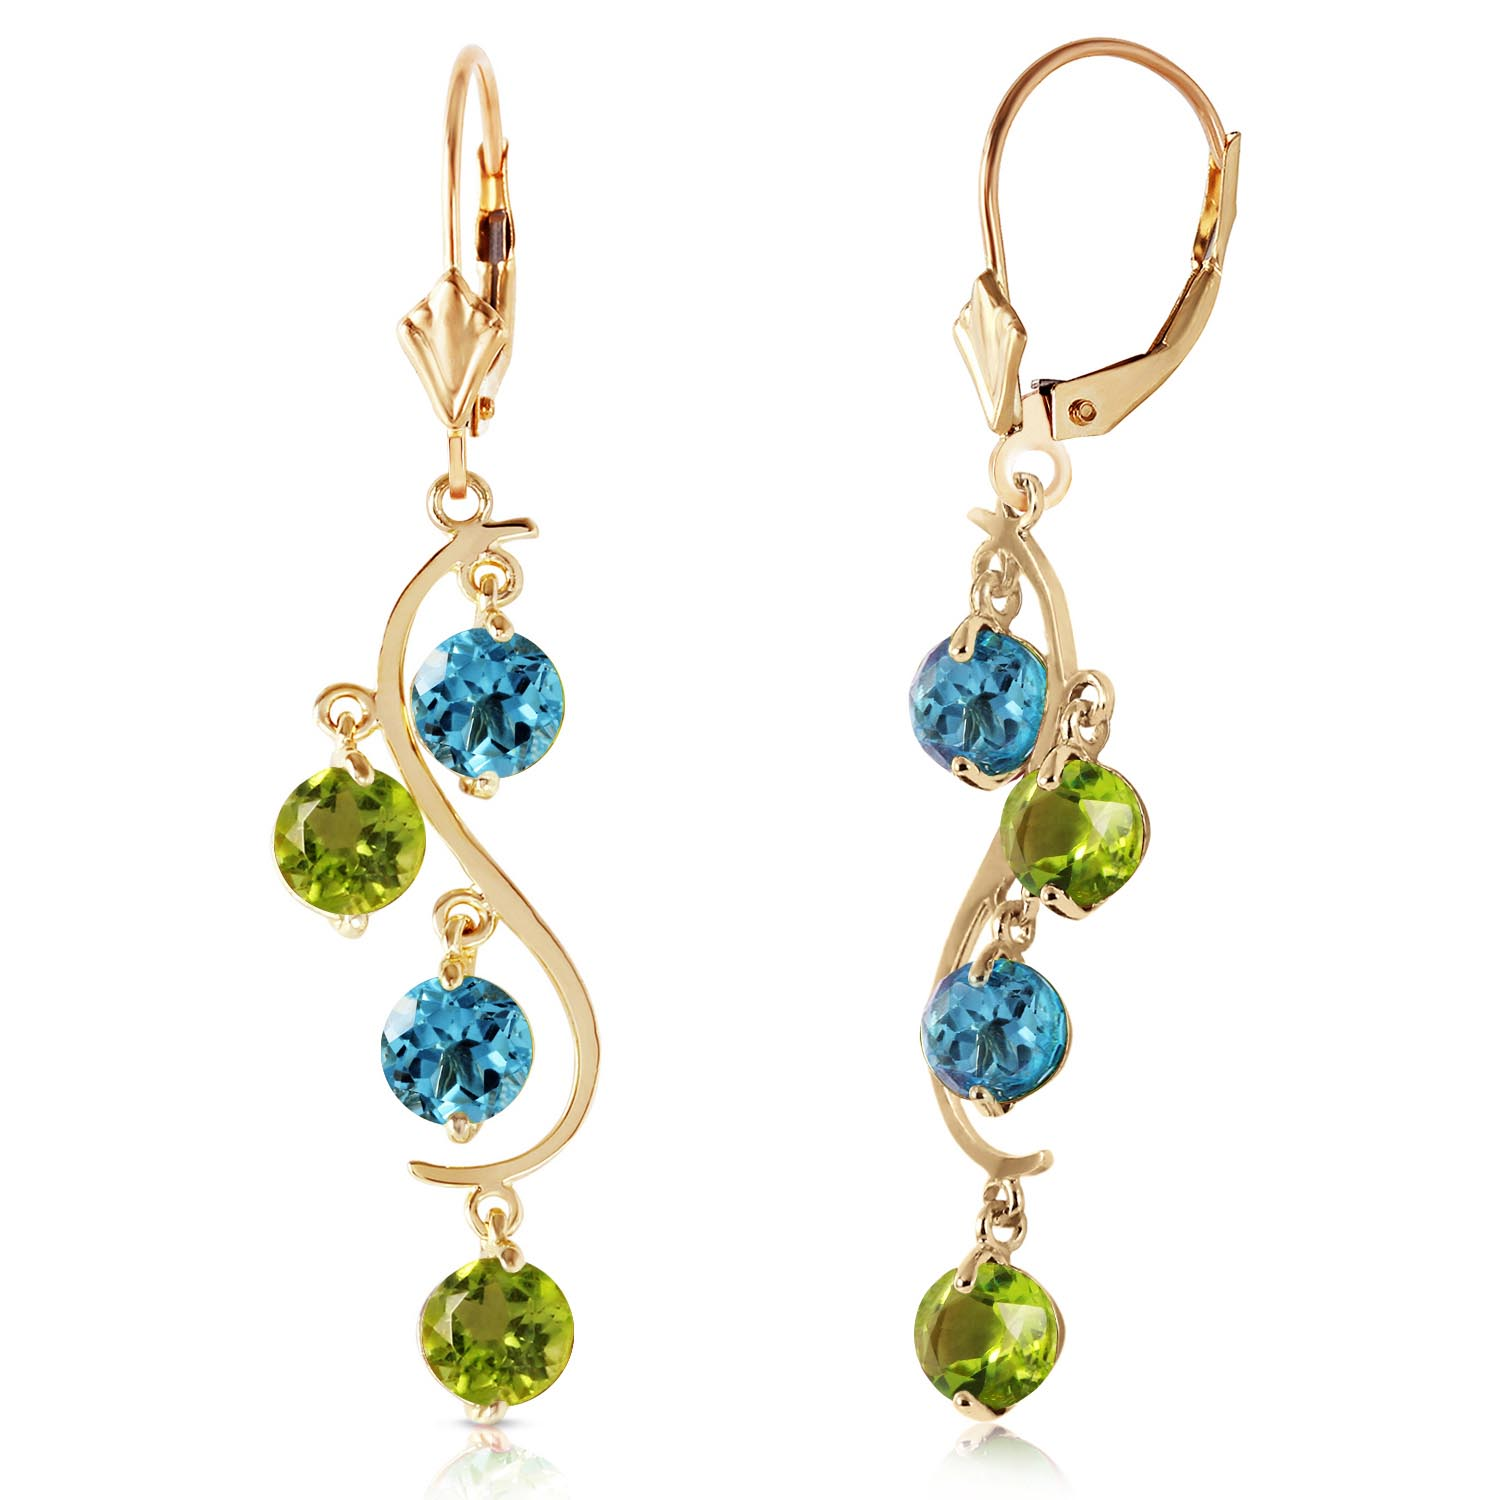 Blue Topaz and Peridot Dream Catcher Drop Earrings 4.94ctw in 9ct Gold